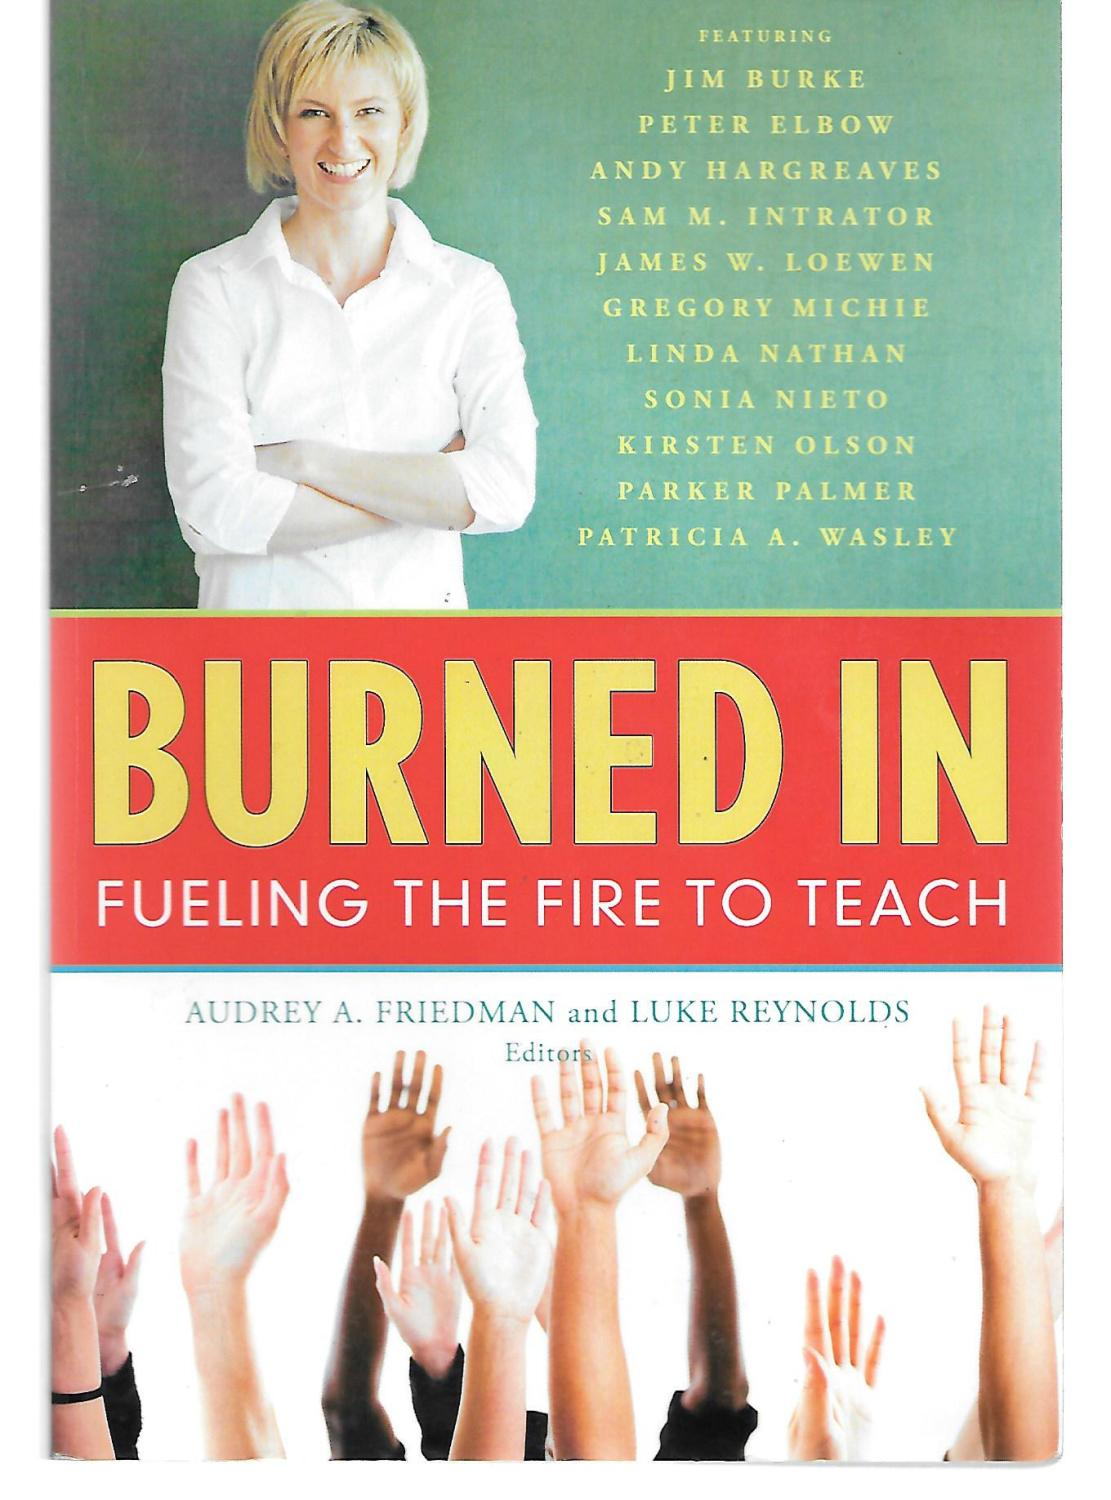 Burned In Fueling The Fire To Teach - Audrey Friedman And Luke Reynolds